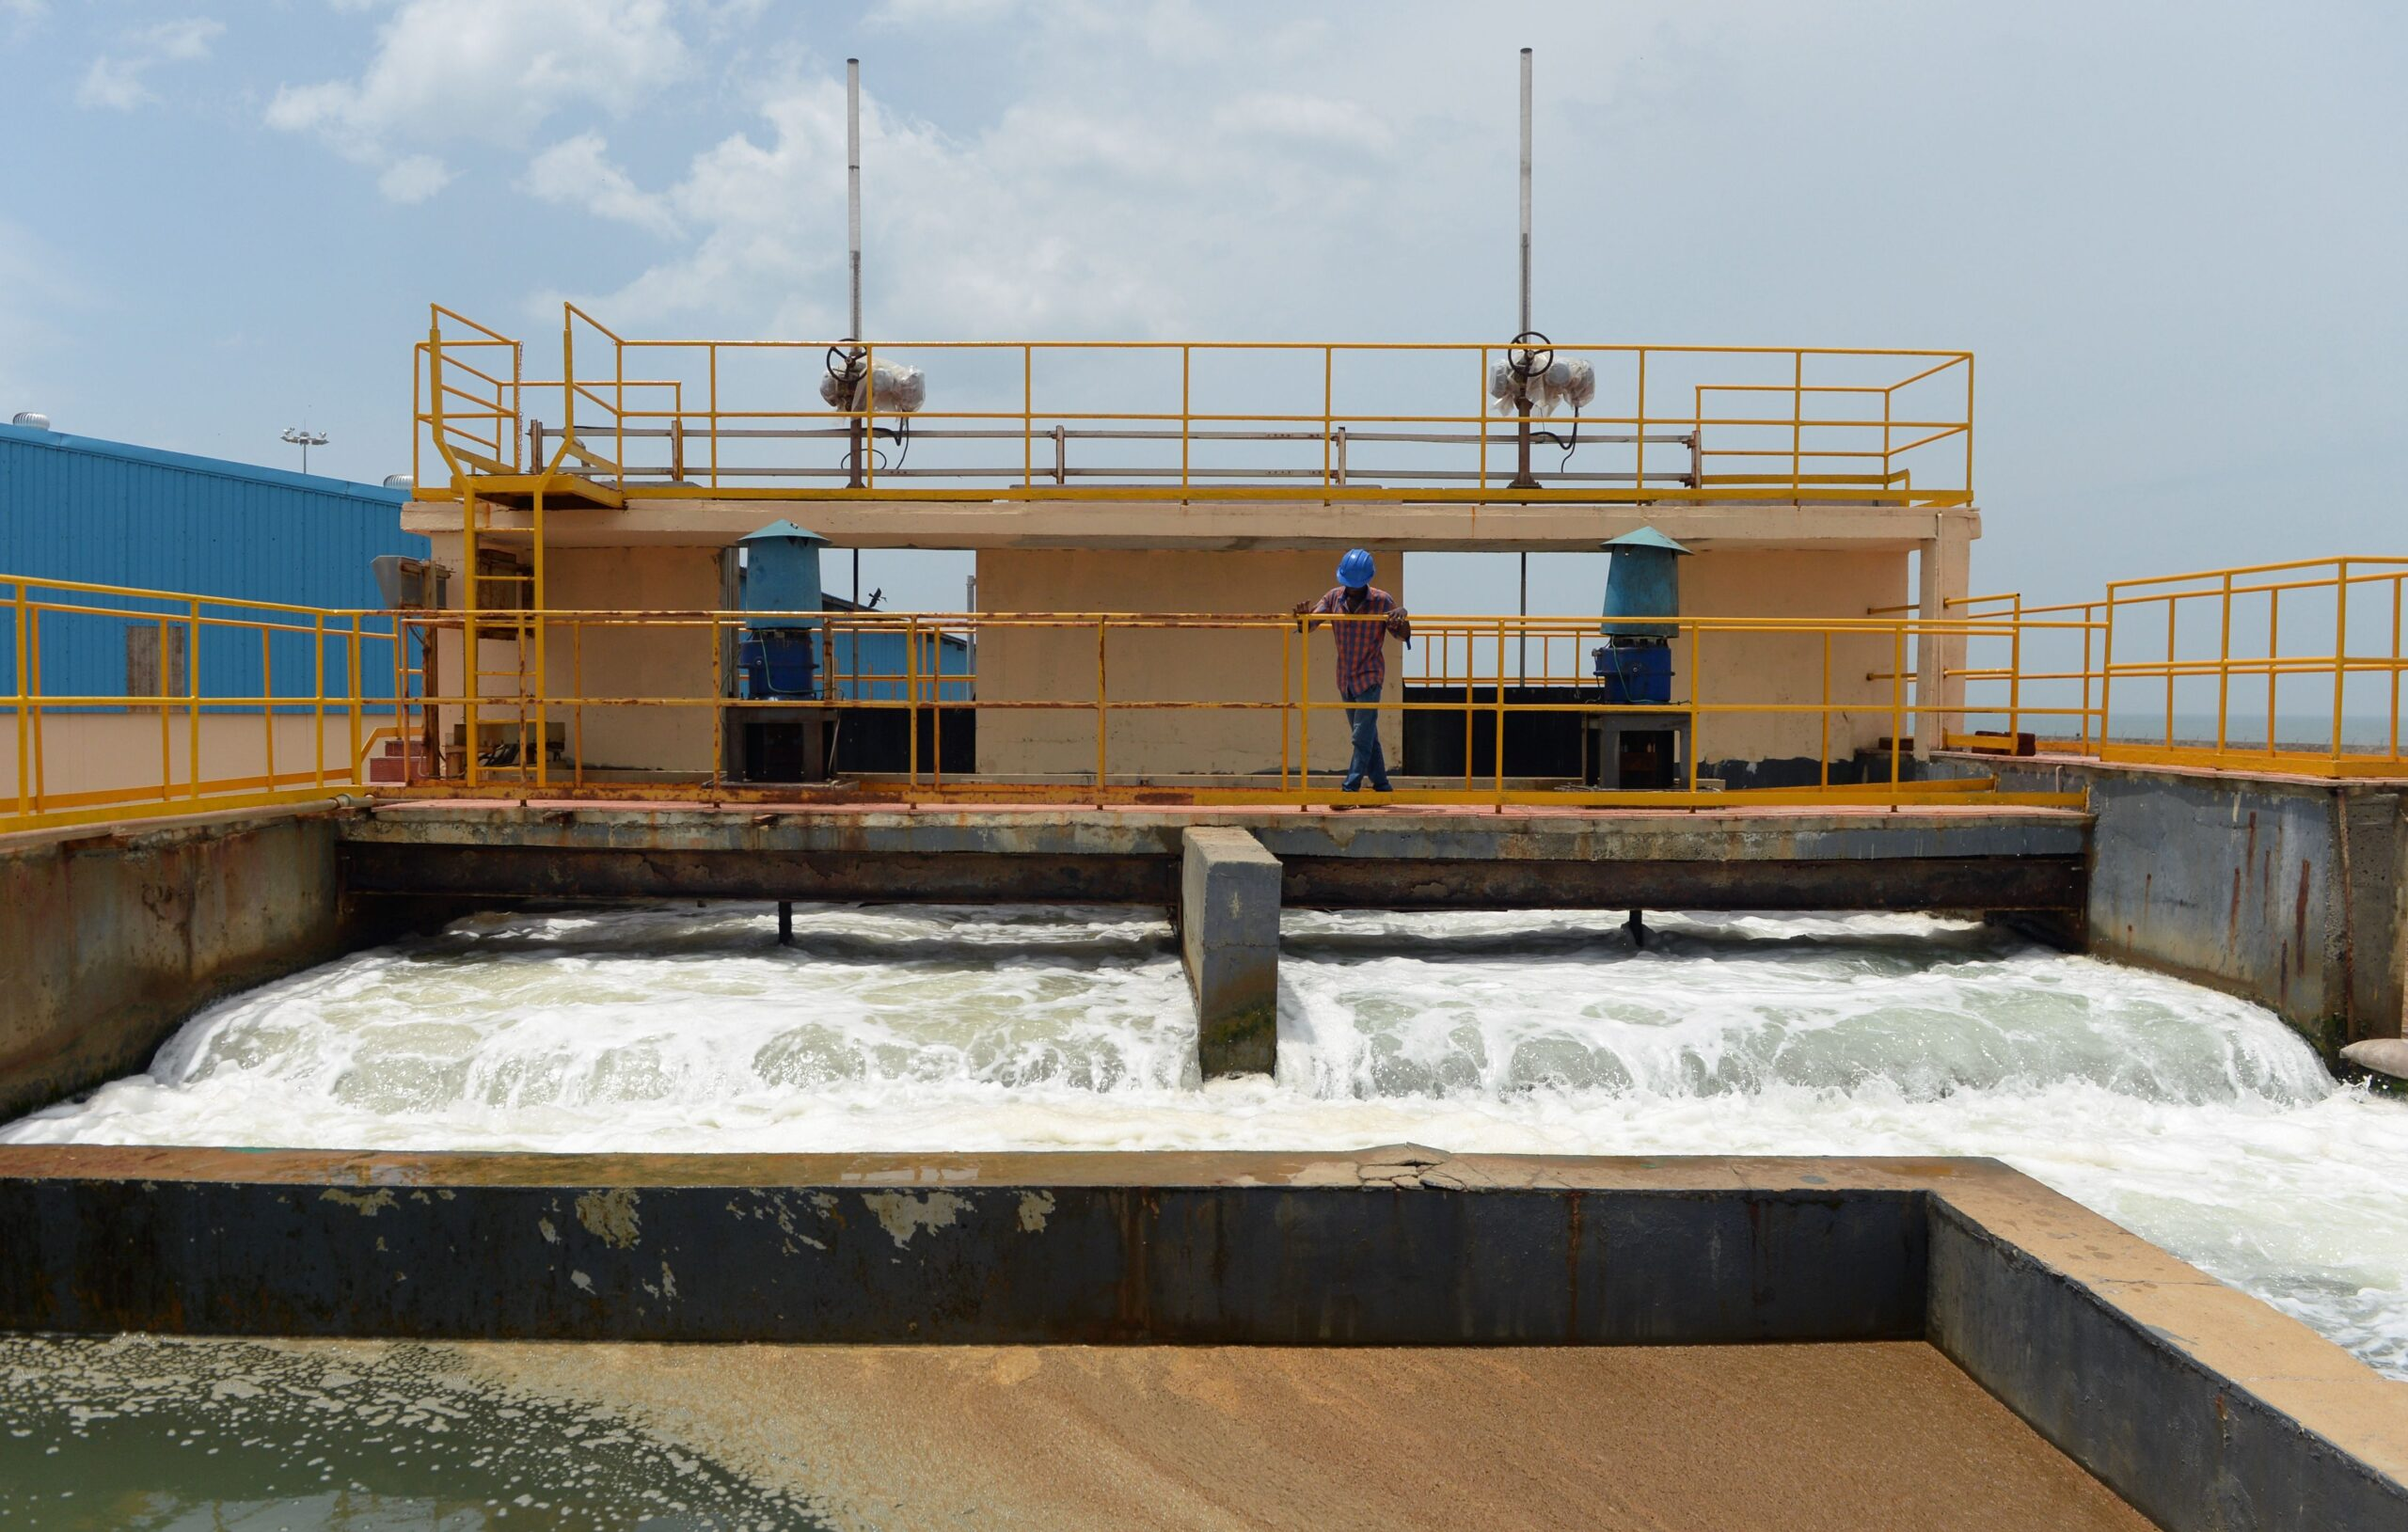 An industrial structure with water running through it. There is a bridge over the running water with a building, lined with yellow handrails and a man standing looking over the water flow.